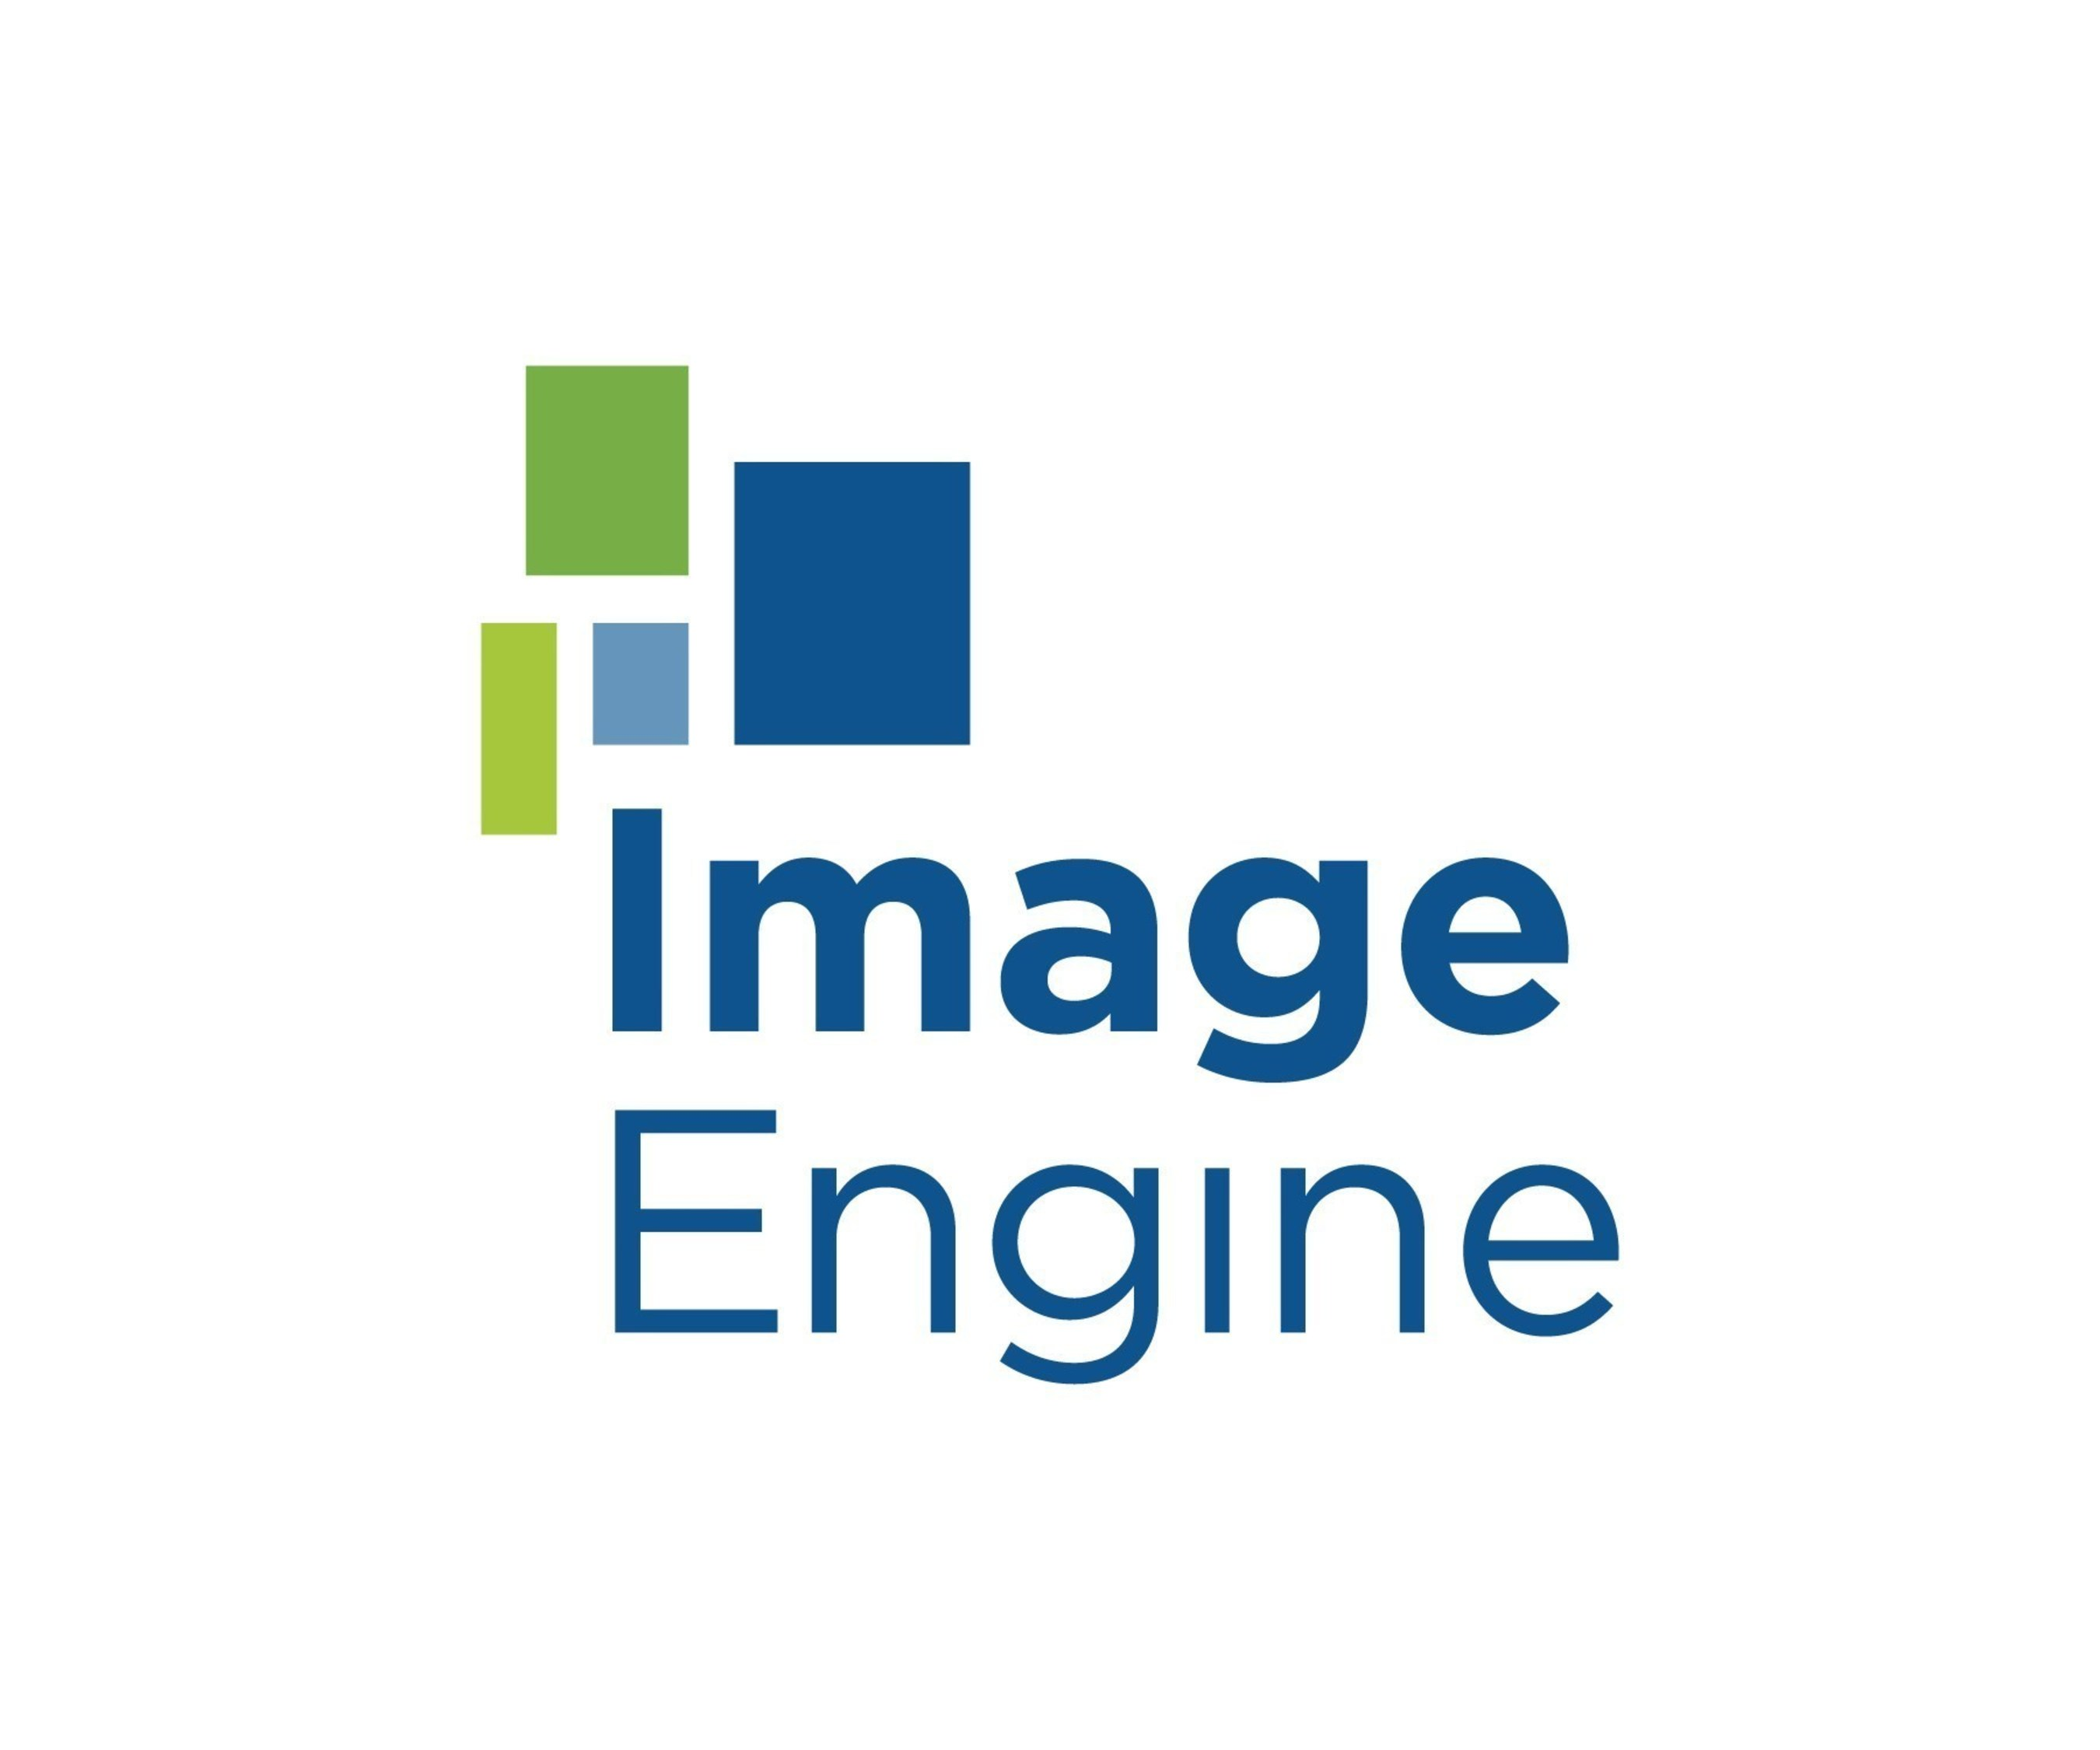 WordPress Sites Can Now Improve Performance by 60% by Using ScientiaMobile's ImageEngine Plugin